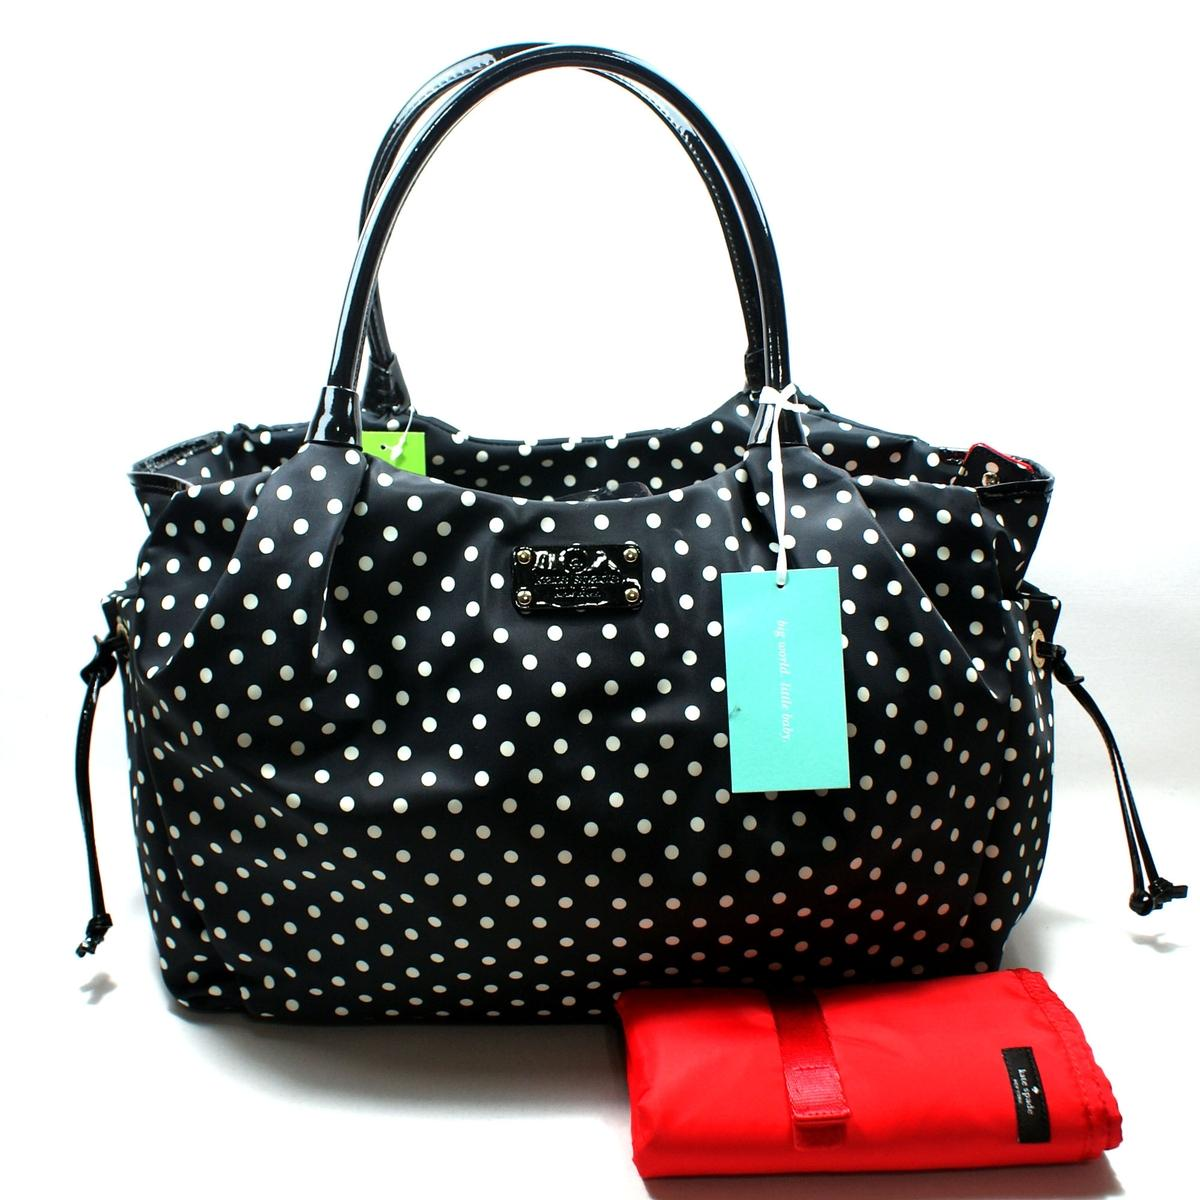 Kate Spade Stevie Baby Bag Spot Nylon Black Diaper Bag #WKRU1613